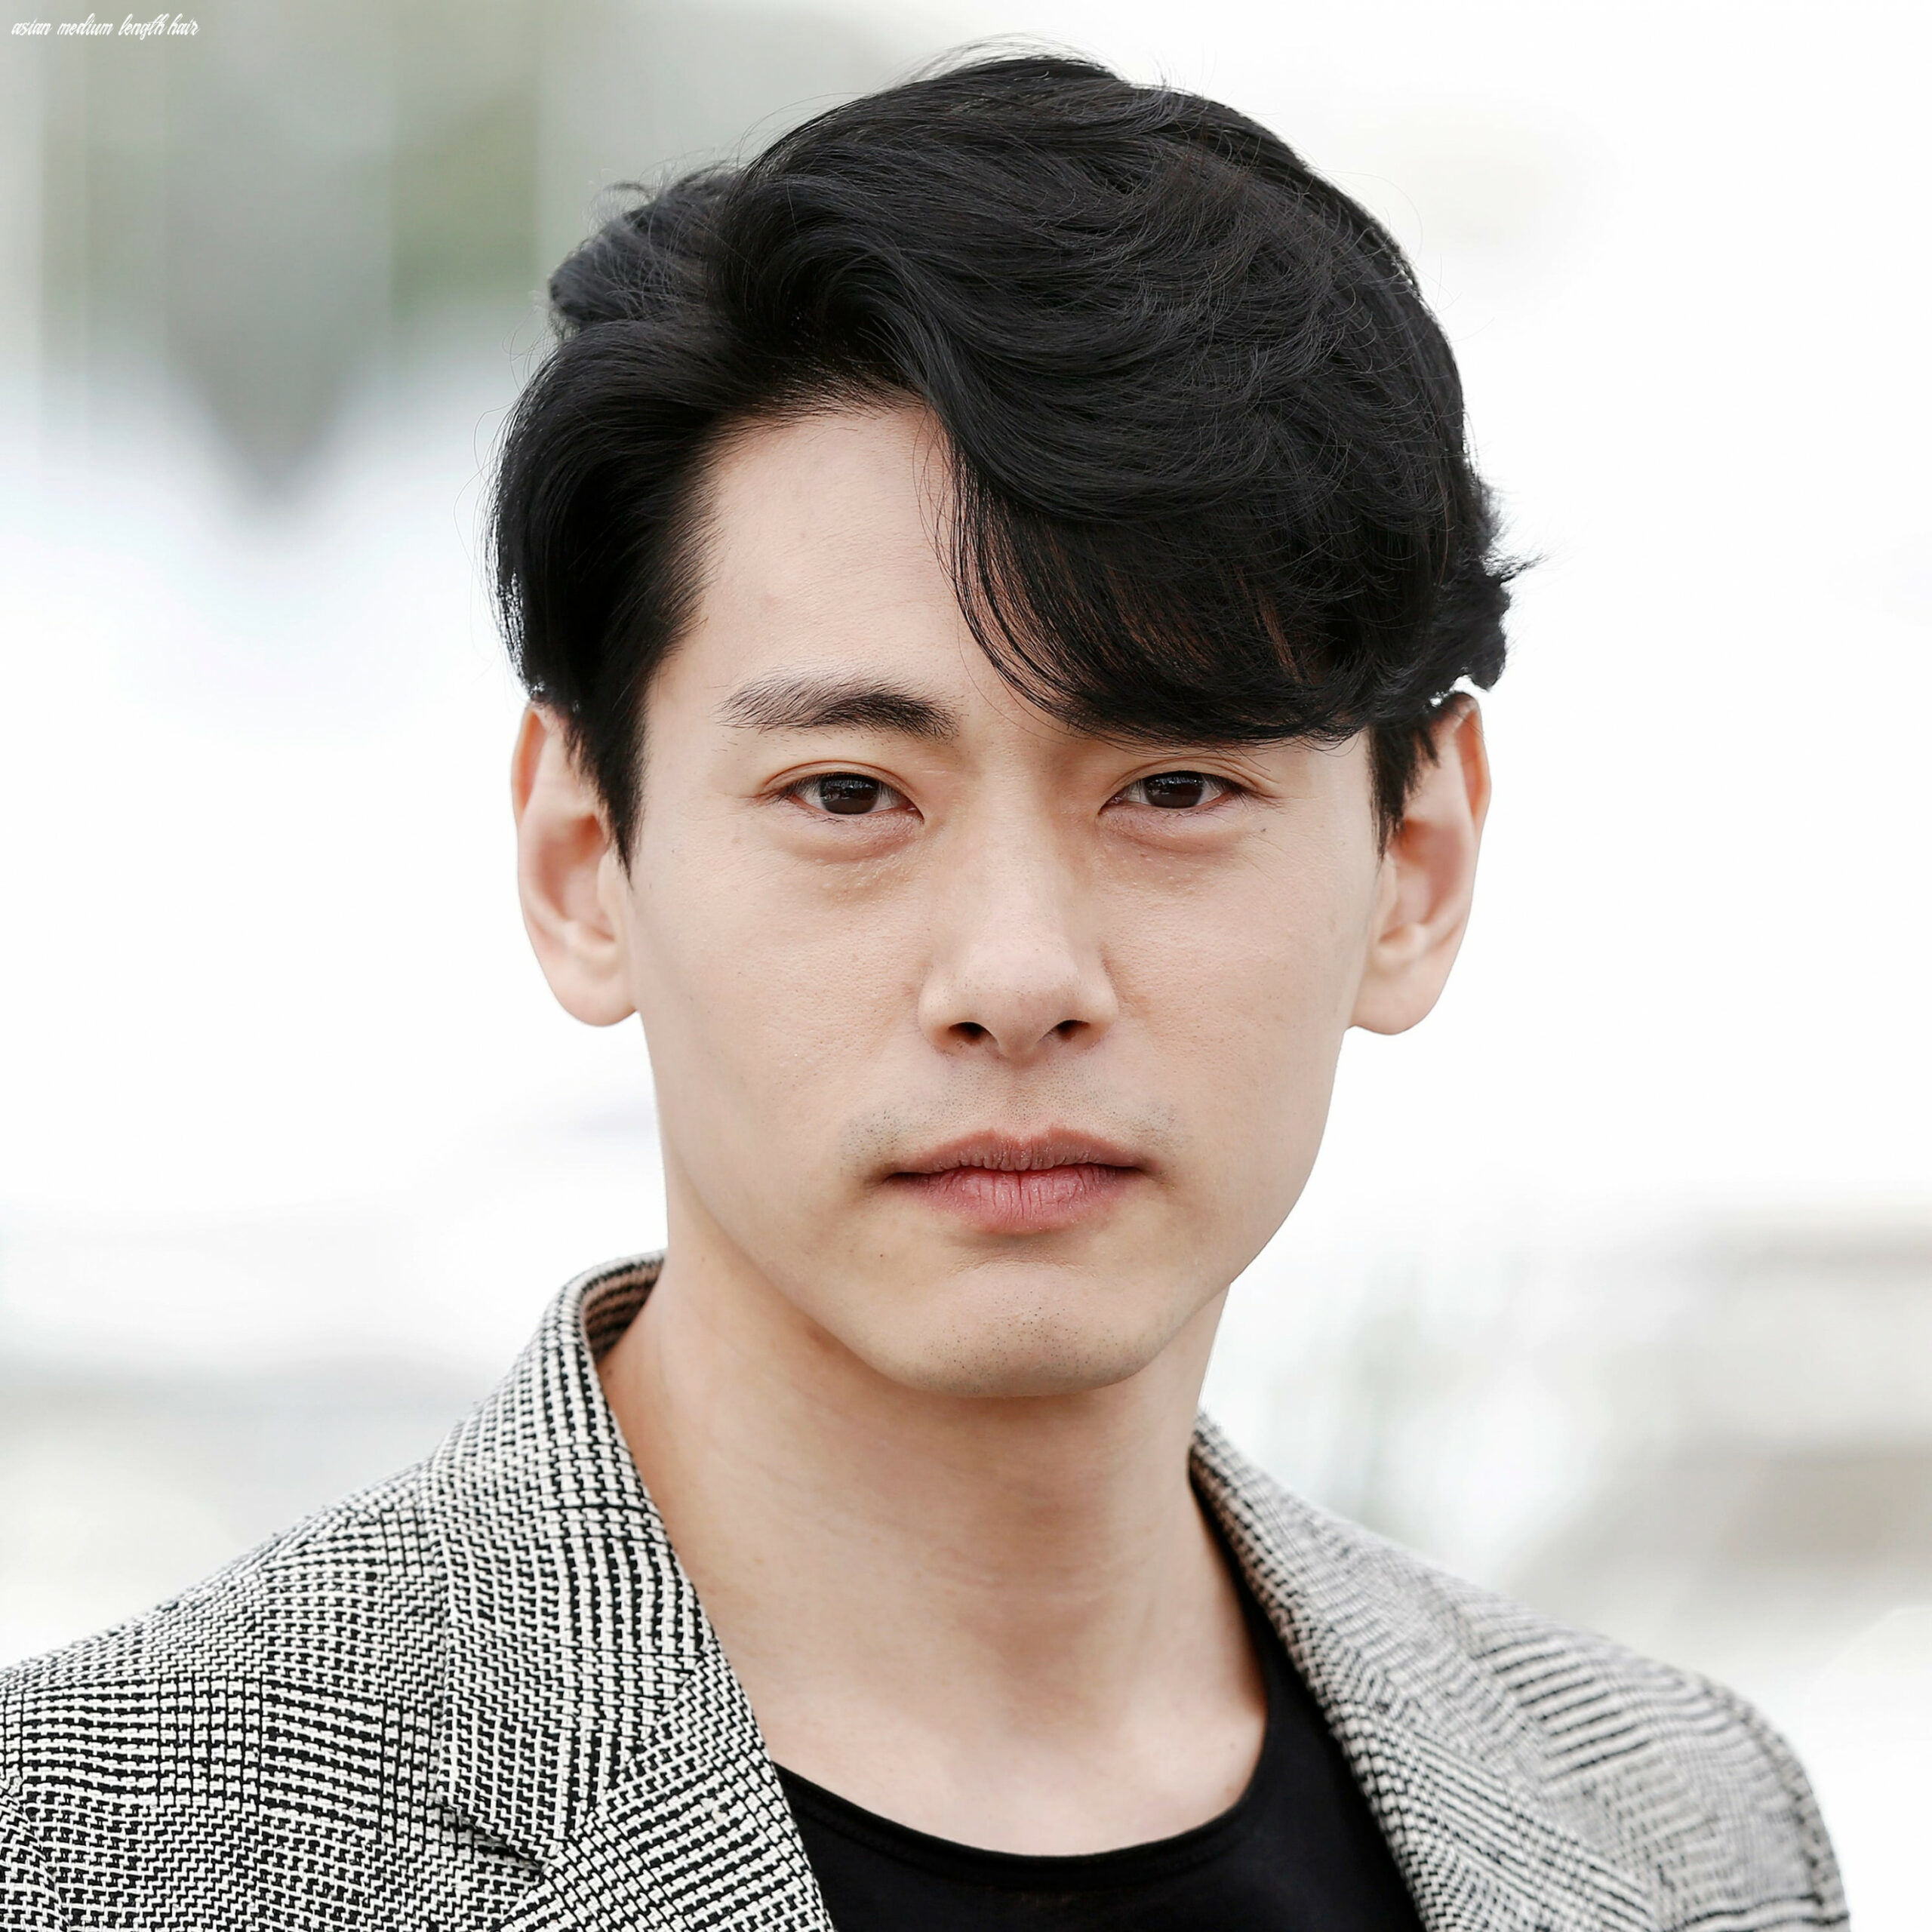 The 8 Best Asian Men's Hairstyles for 88 - The Modest Man